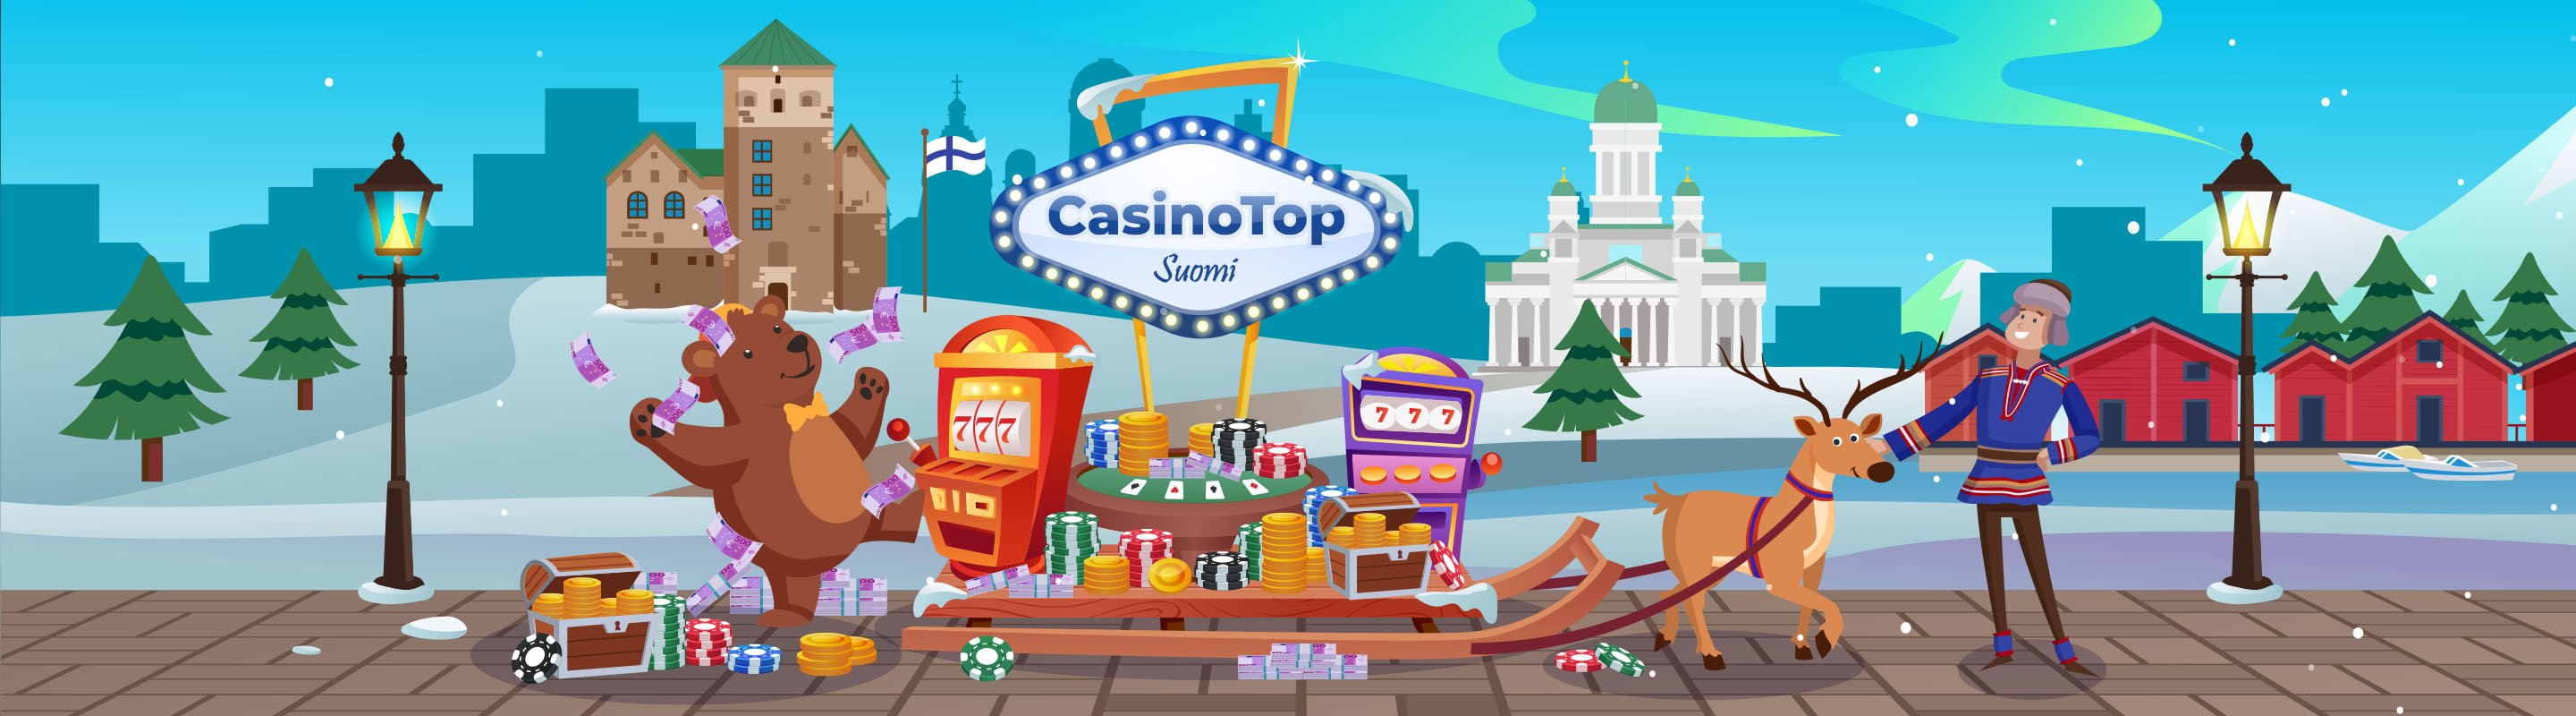 CasinoTop Suomi Footer